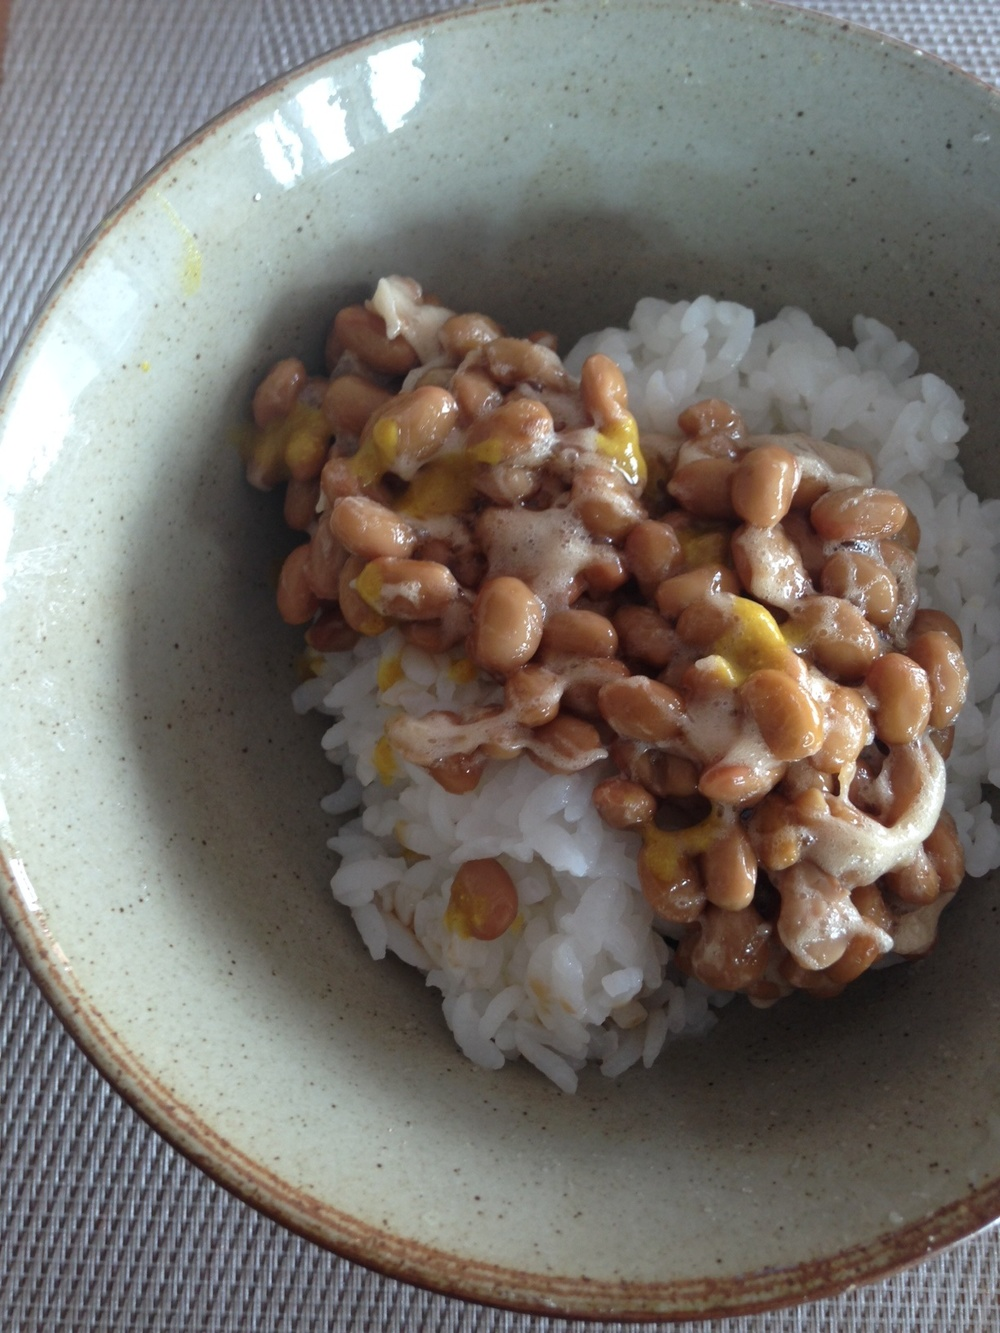 Natto: I do admit. It's an acquired taste but it's a recent favorite of mine.